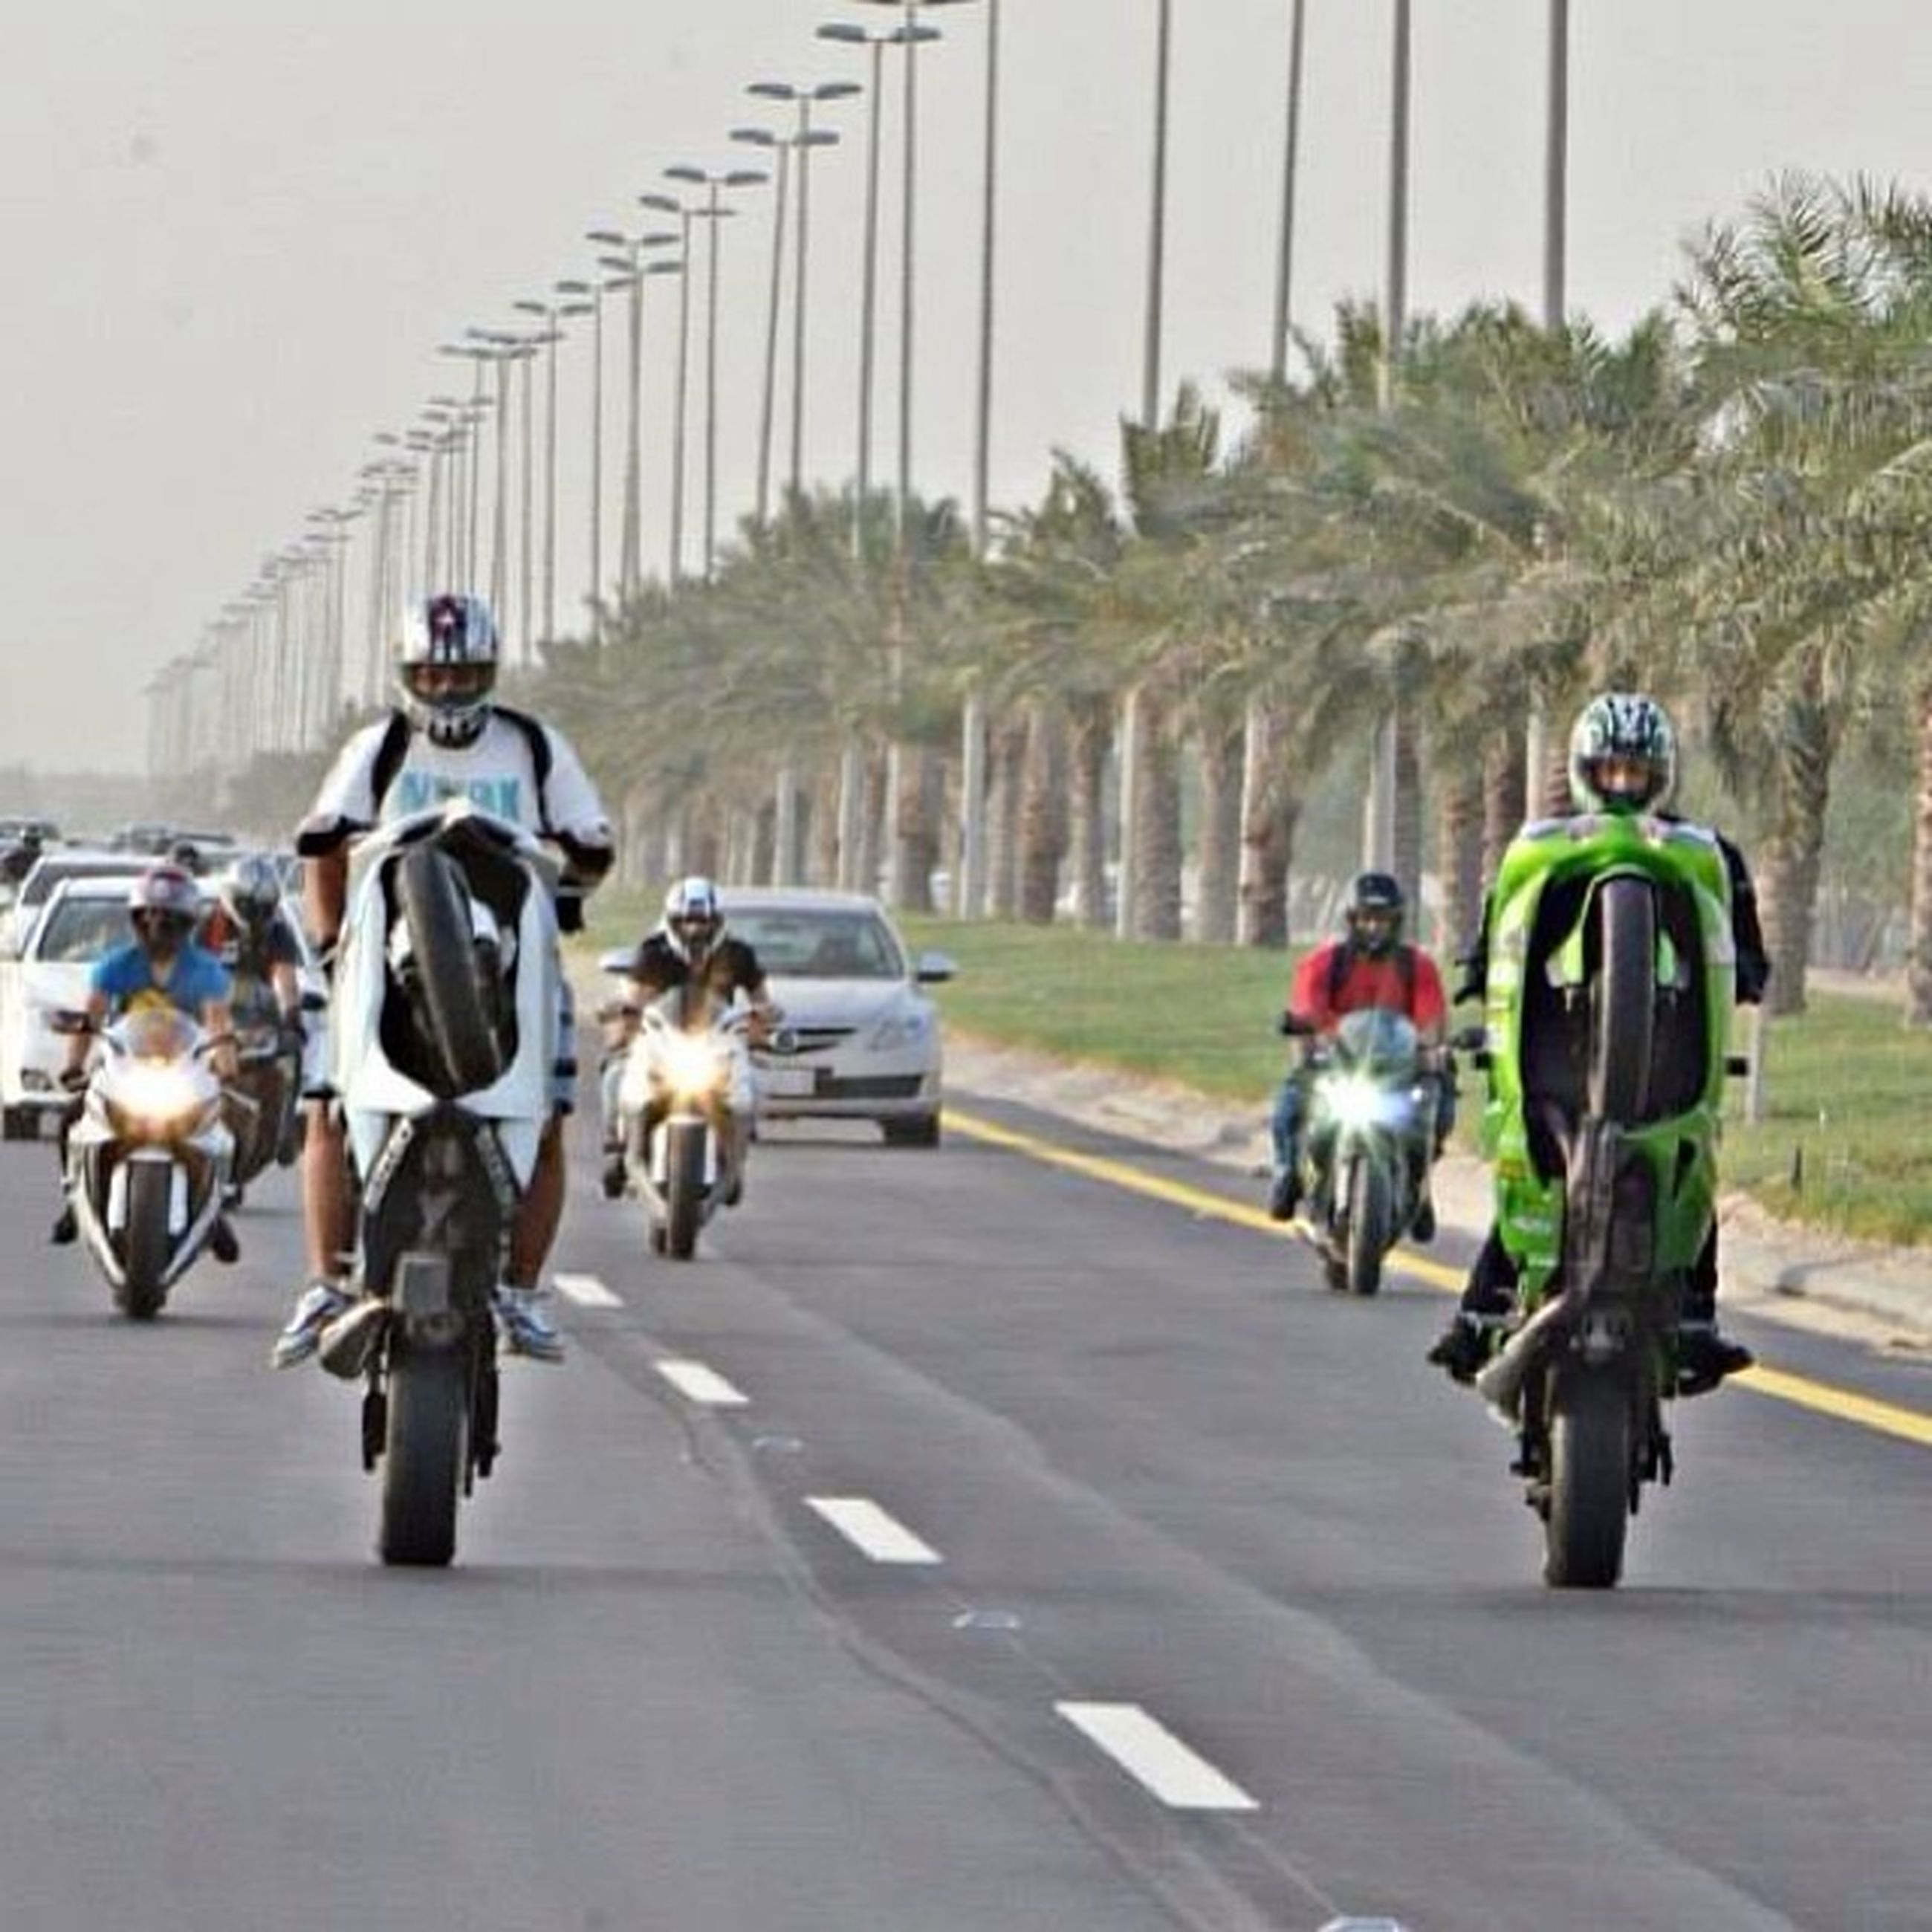 riding, full length, transportation, lifestyles, bicycle, land vehicle, leisure activity, road, men, street, mode of transport, casual clothing, cycling, walking, the way forward, on the move, day, togetherness, person